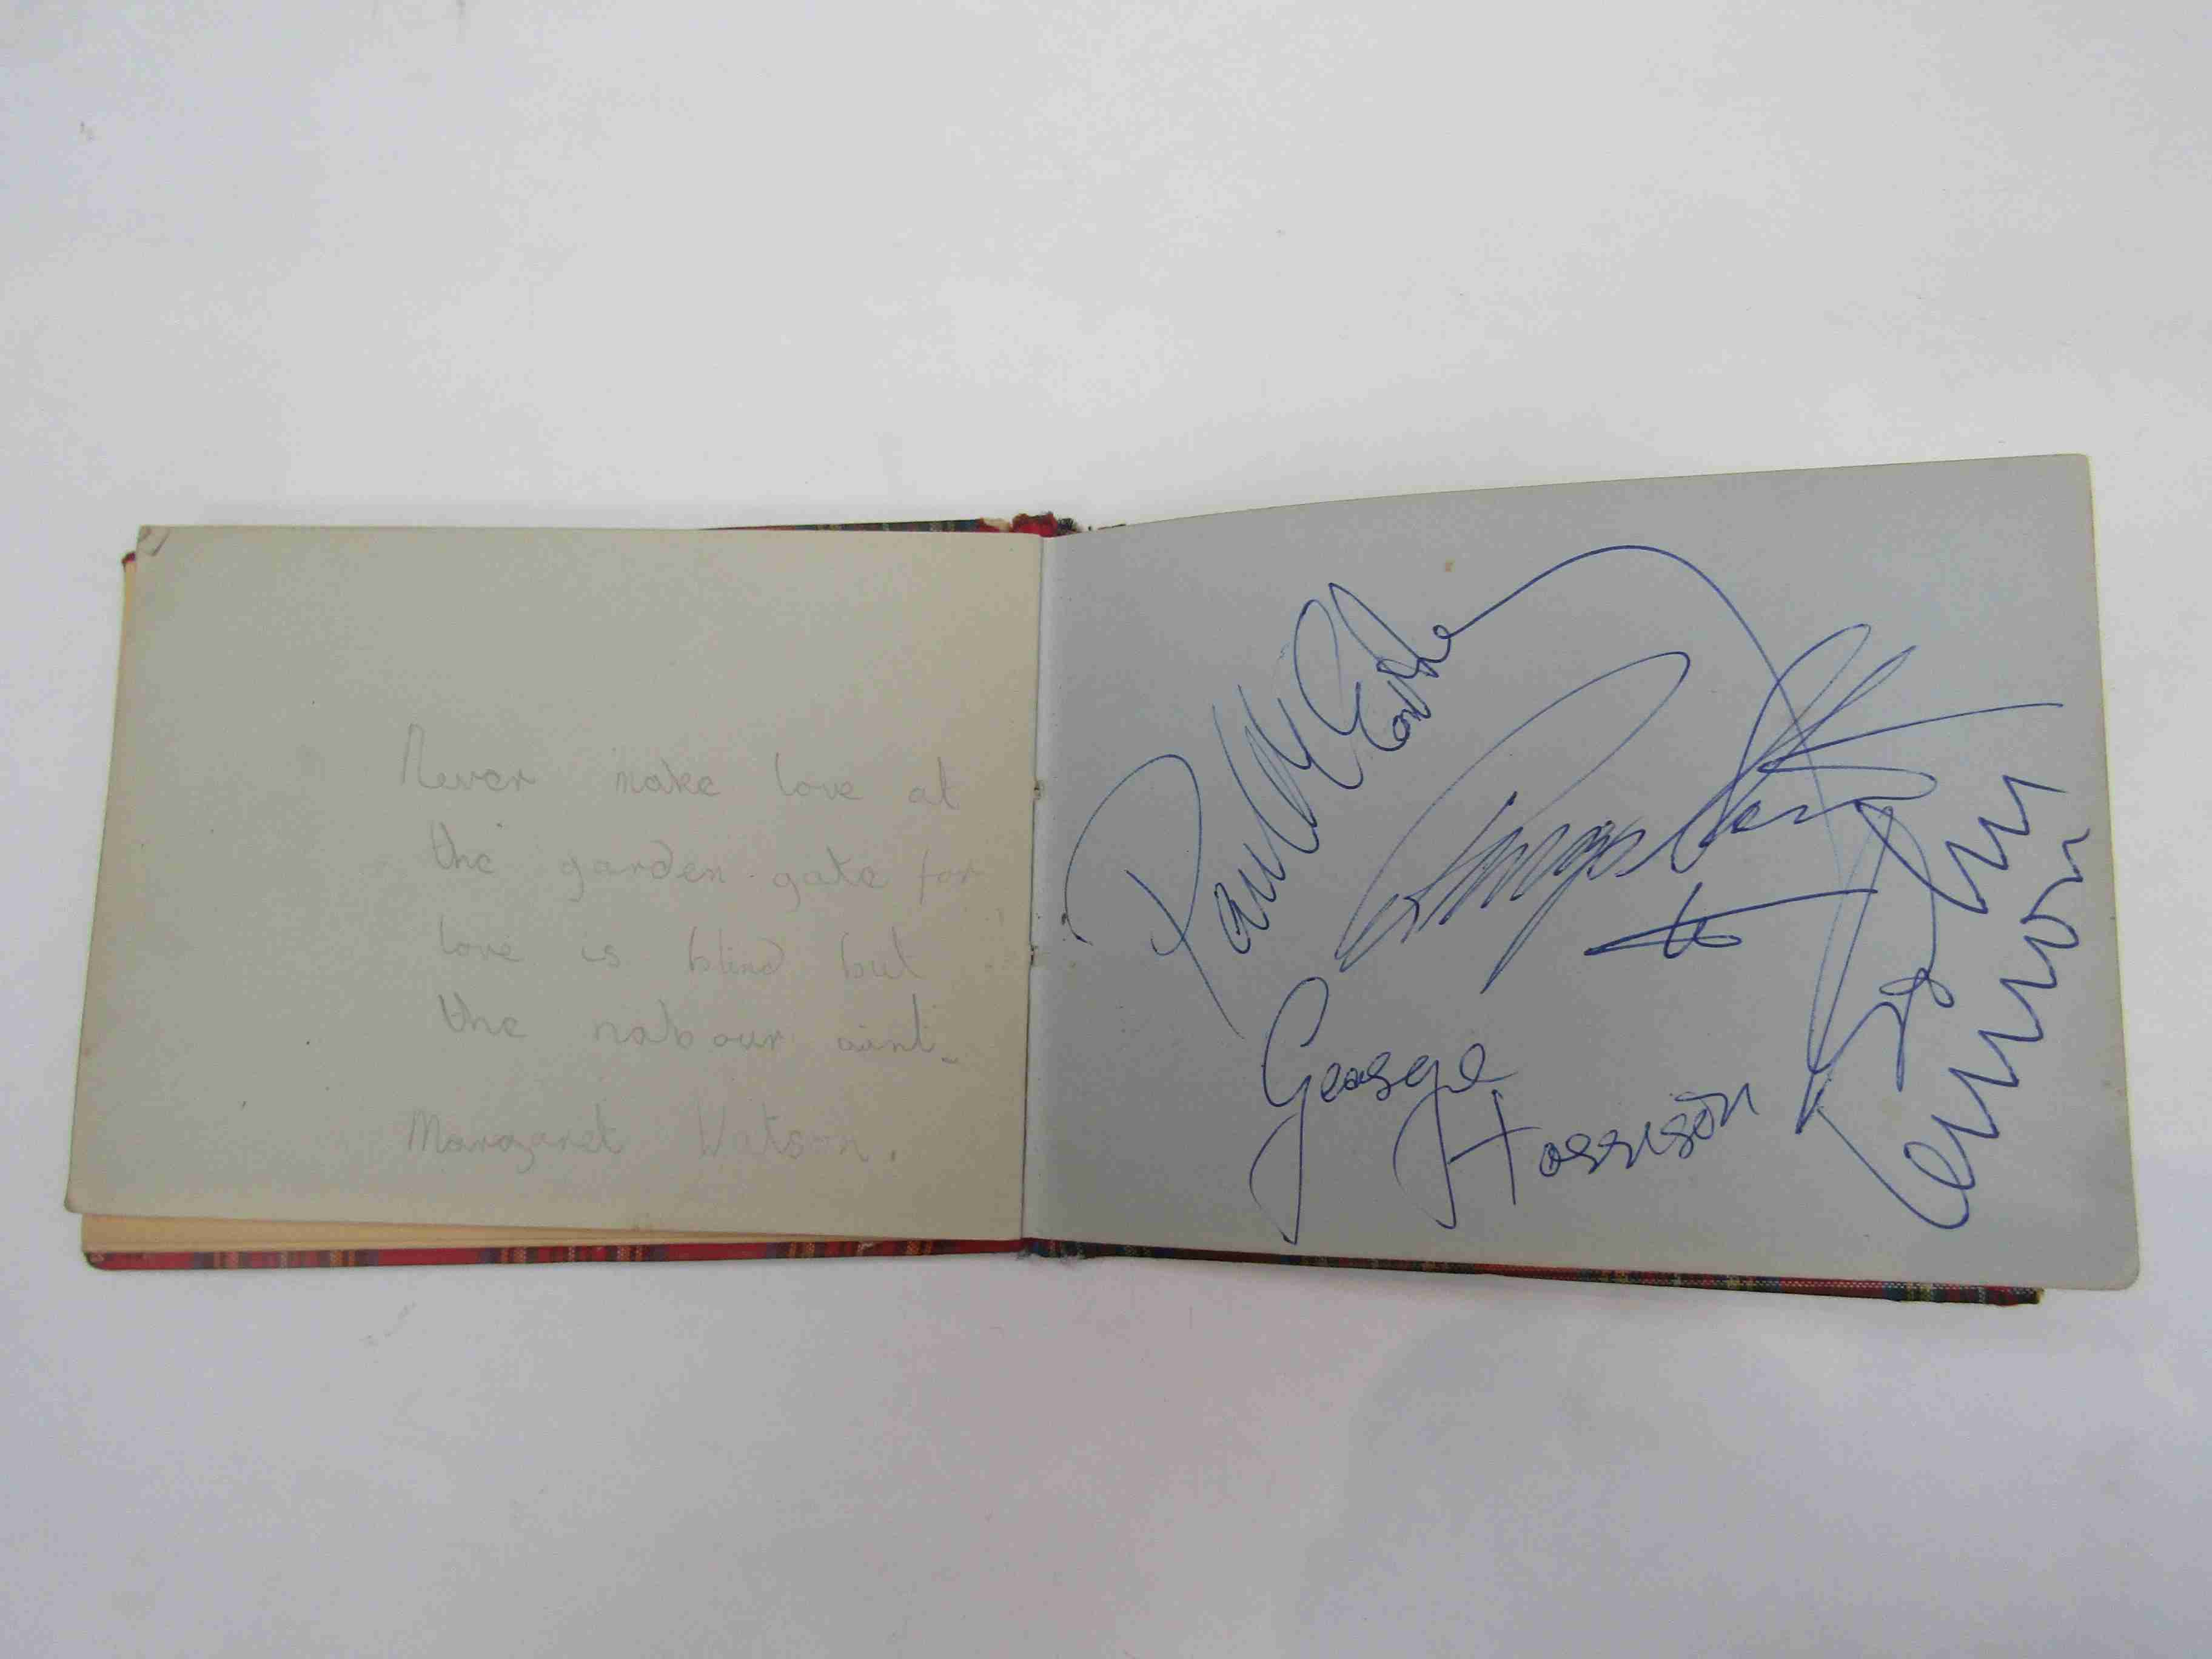 Two 1950s/60s autograph books containing autographs by Benny Hill, Honor Blackman, Barbara Shelley, - Image 25 of 34